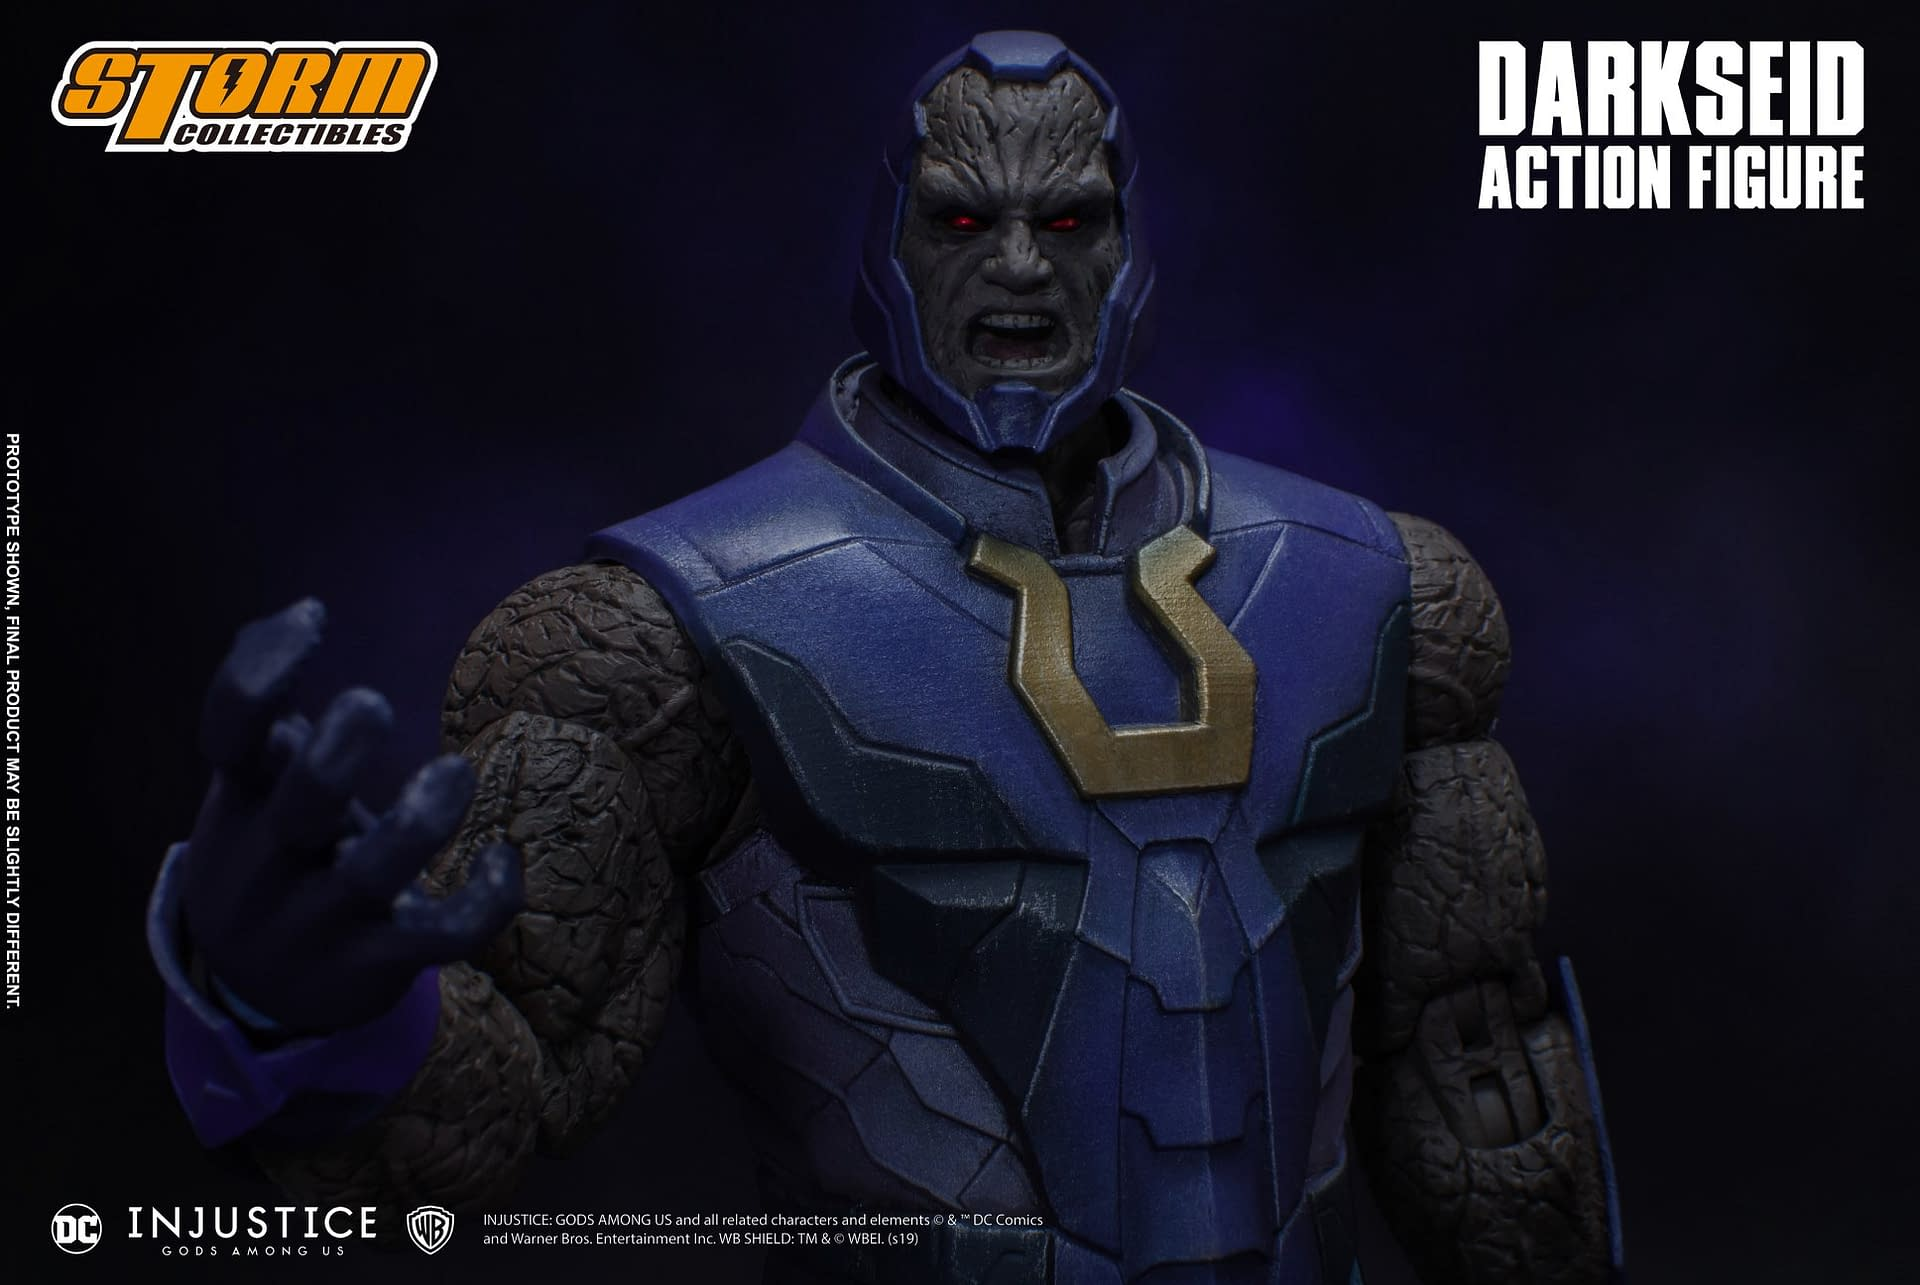 Darkseid Has Arrived in New